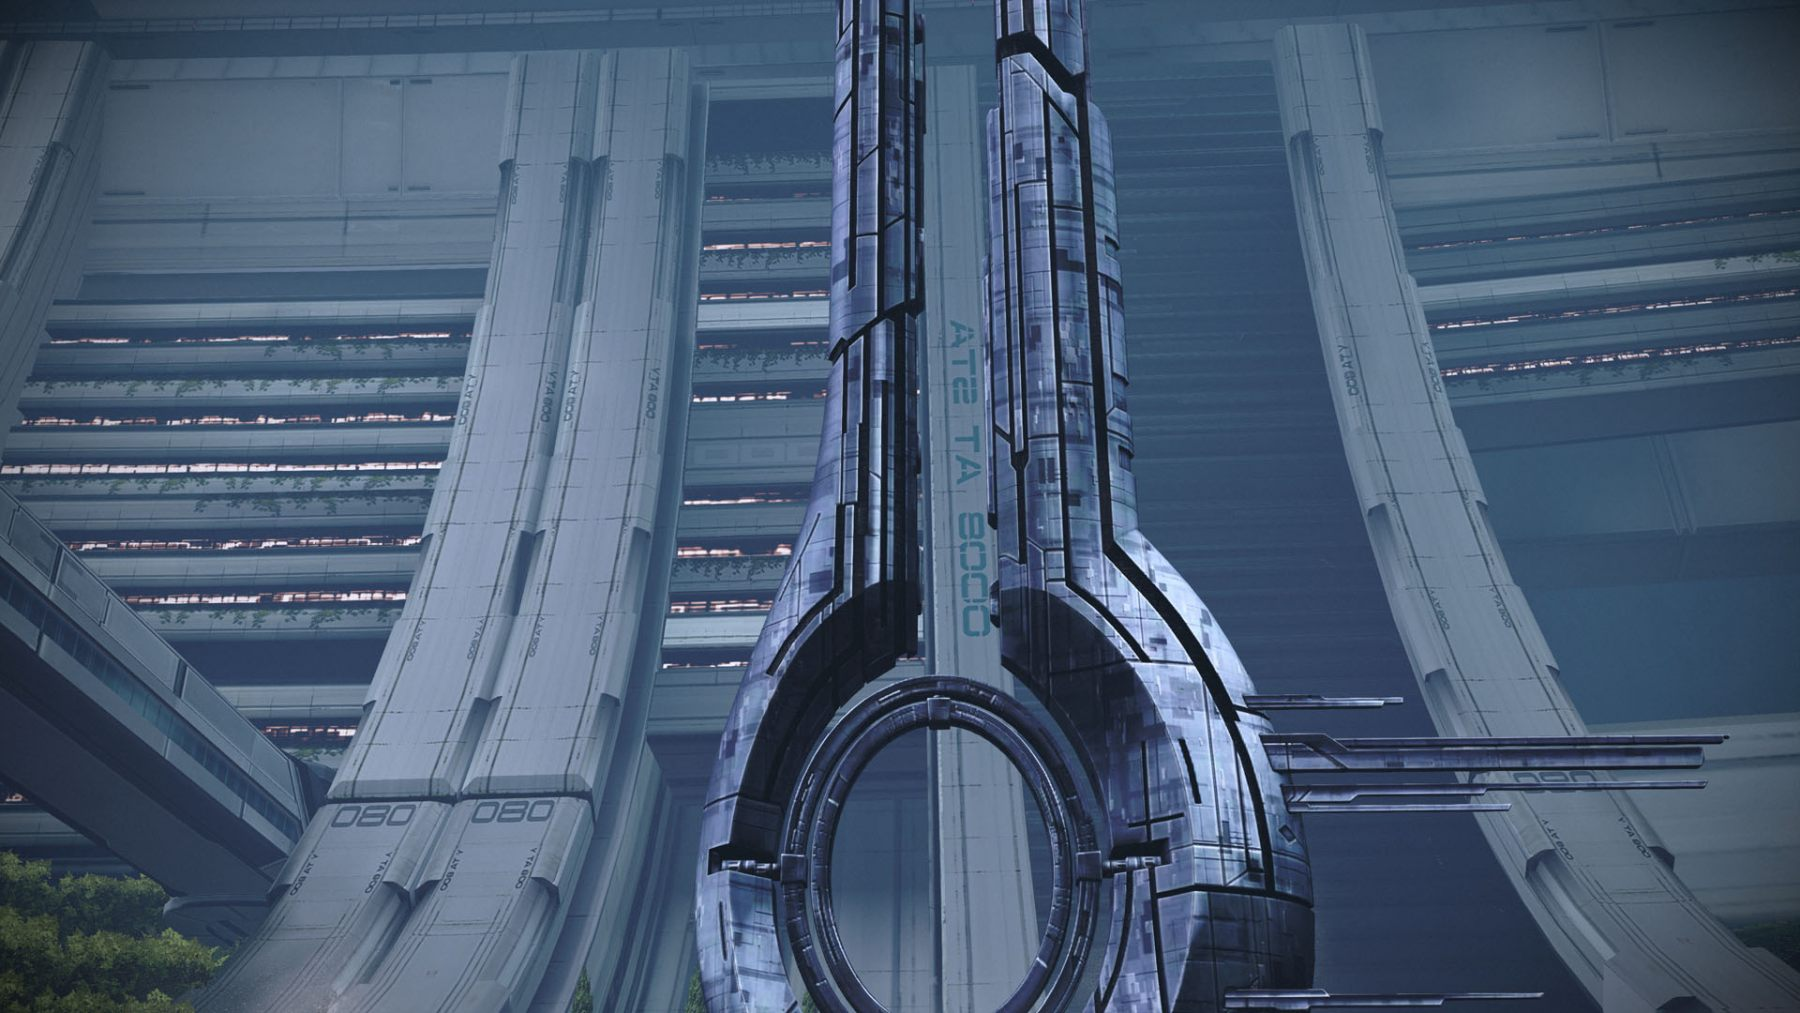 Mass-Effect-Accelerator-in-the-Citadel